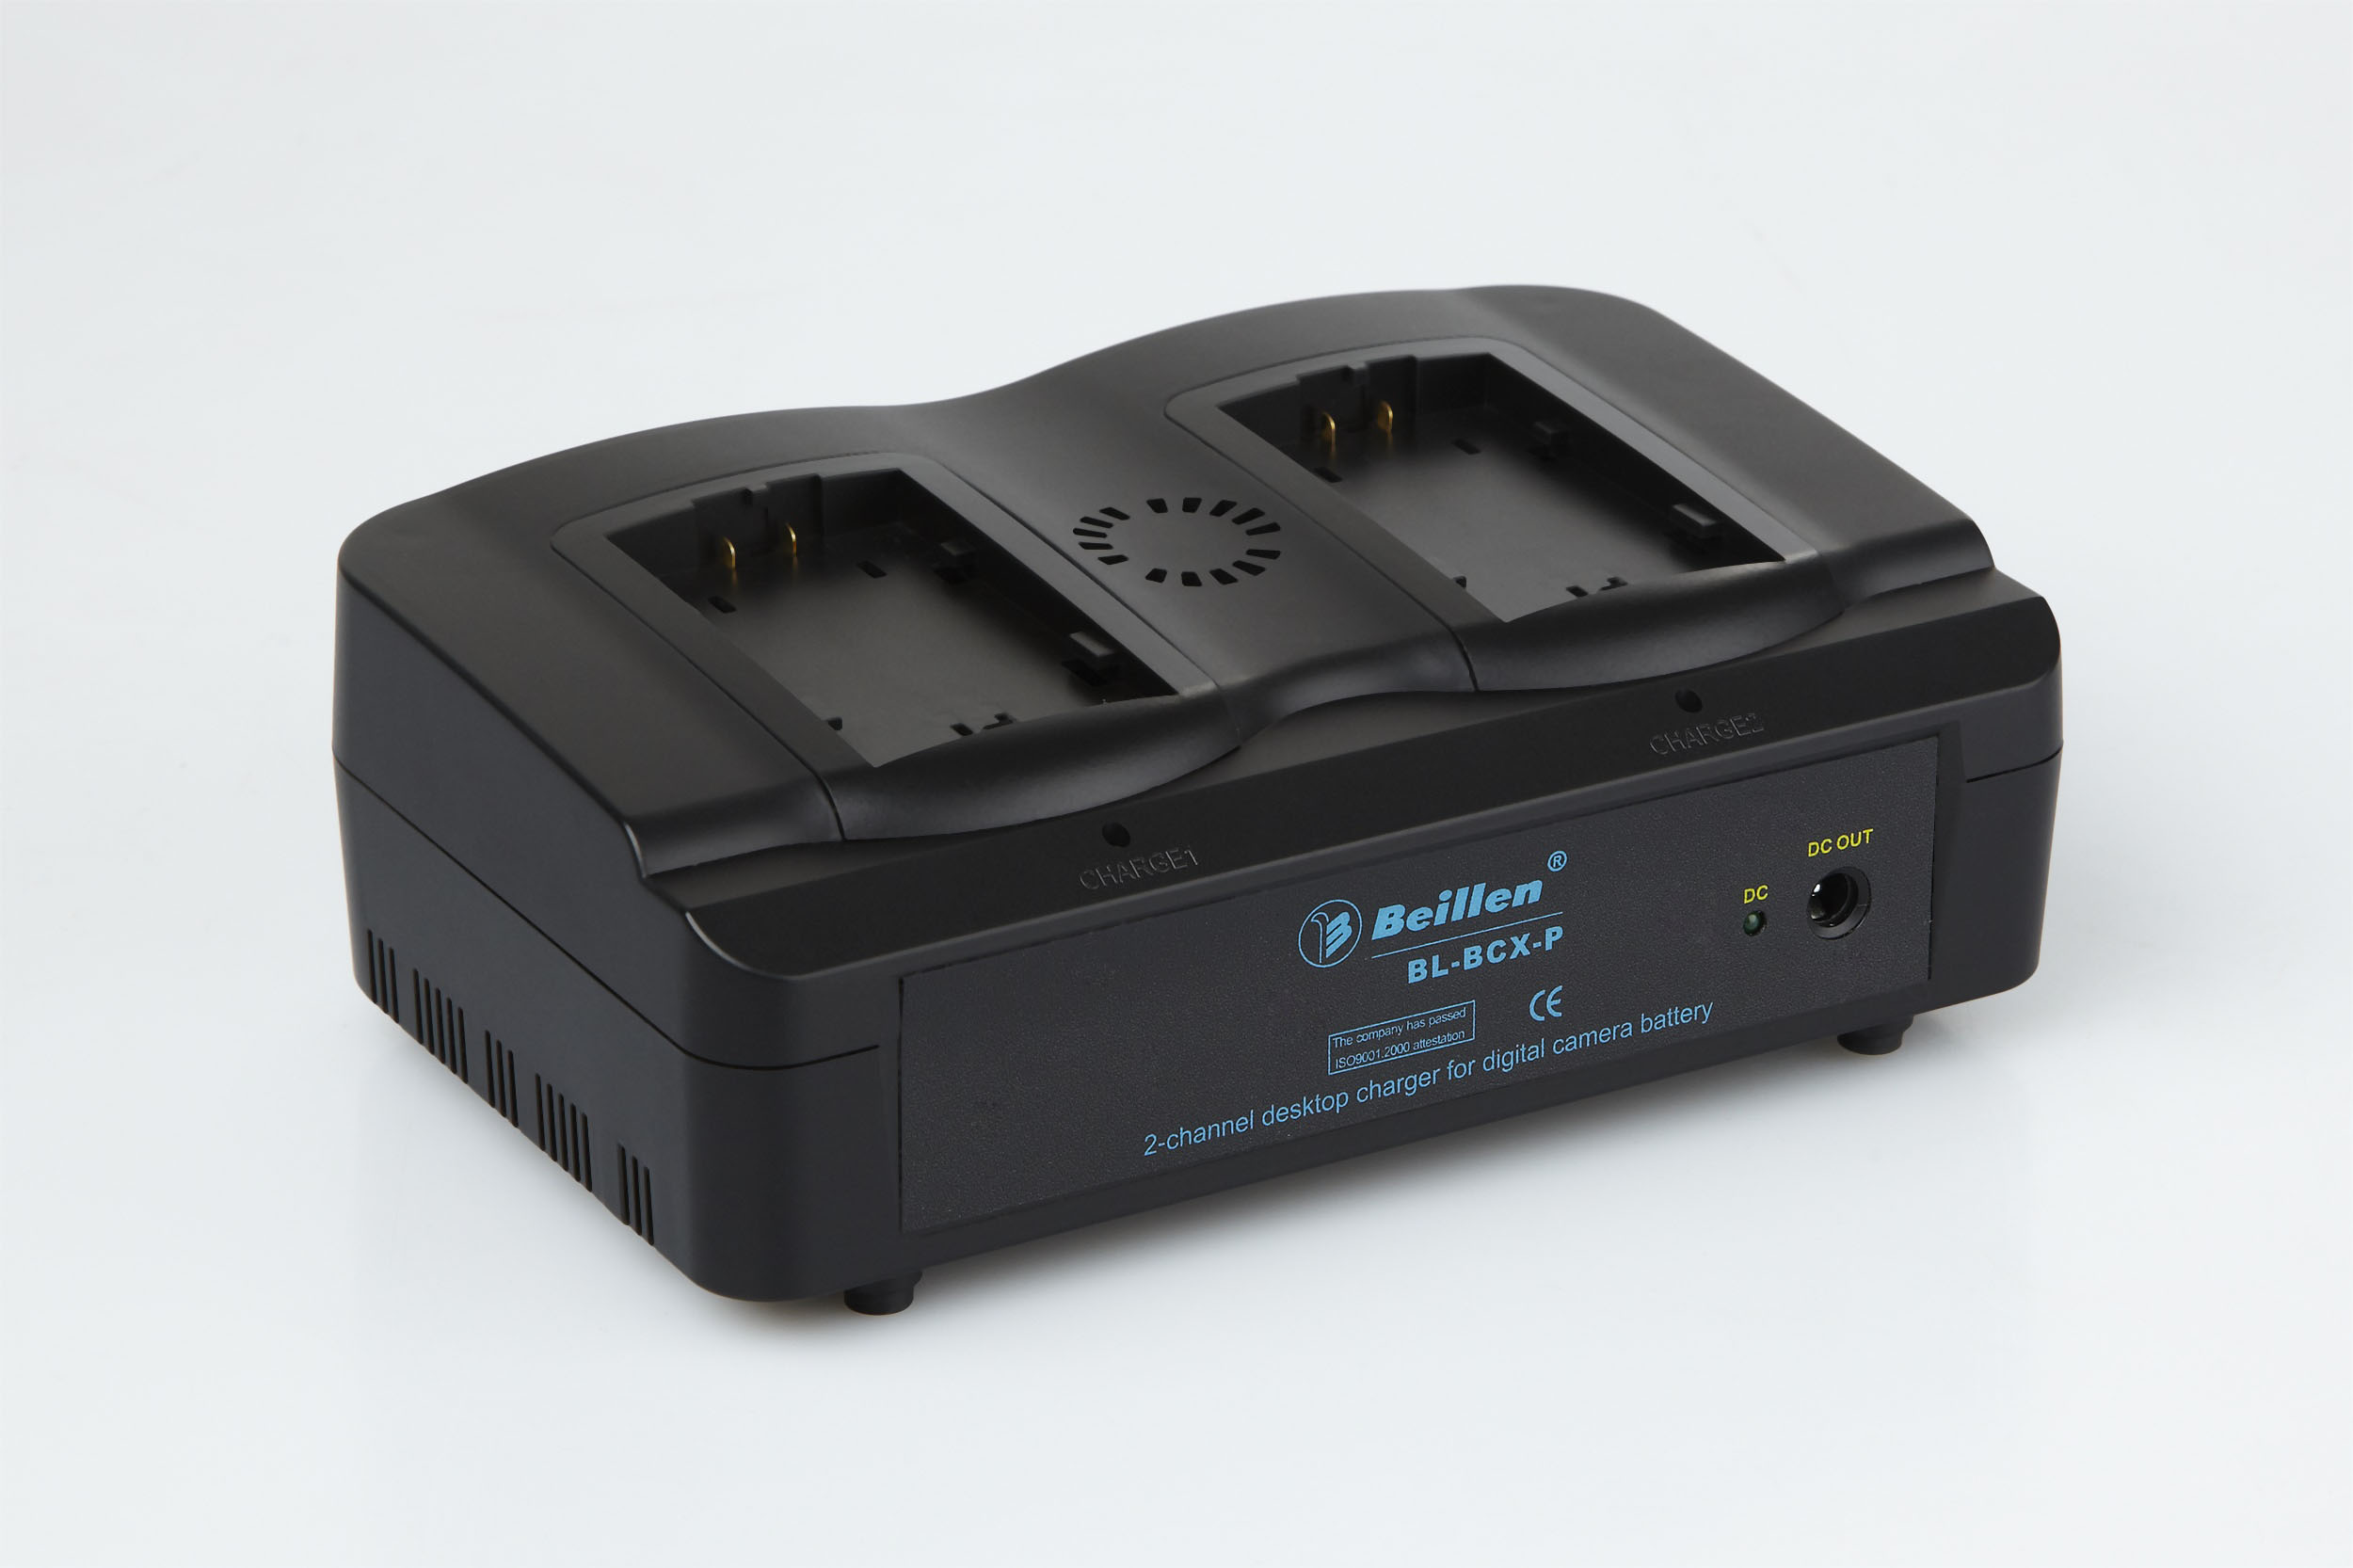 Beillen BL-BCX-P Li-ion charger for Panasonic